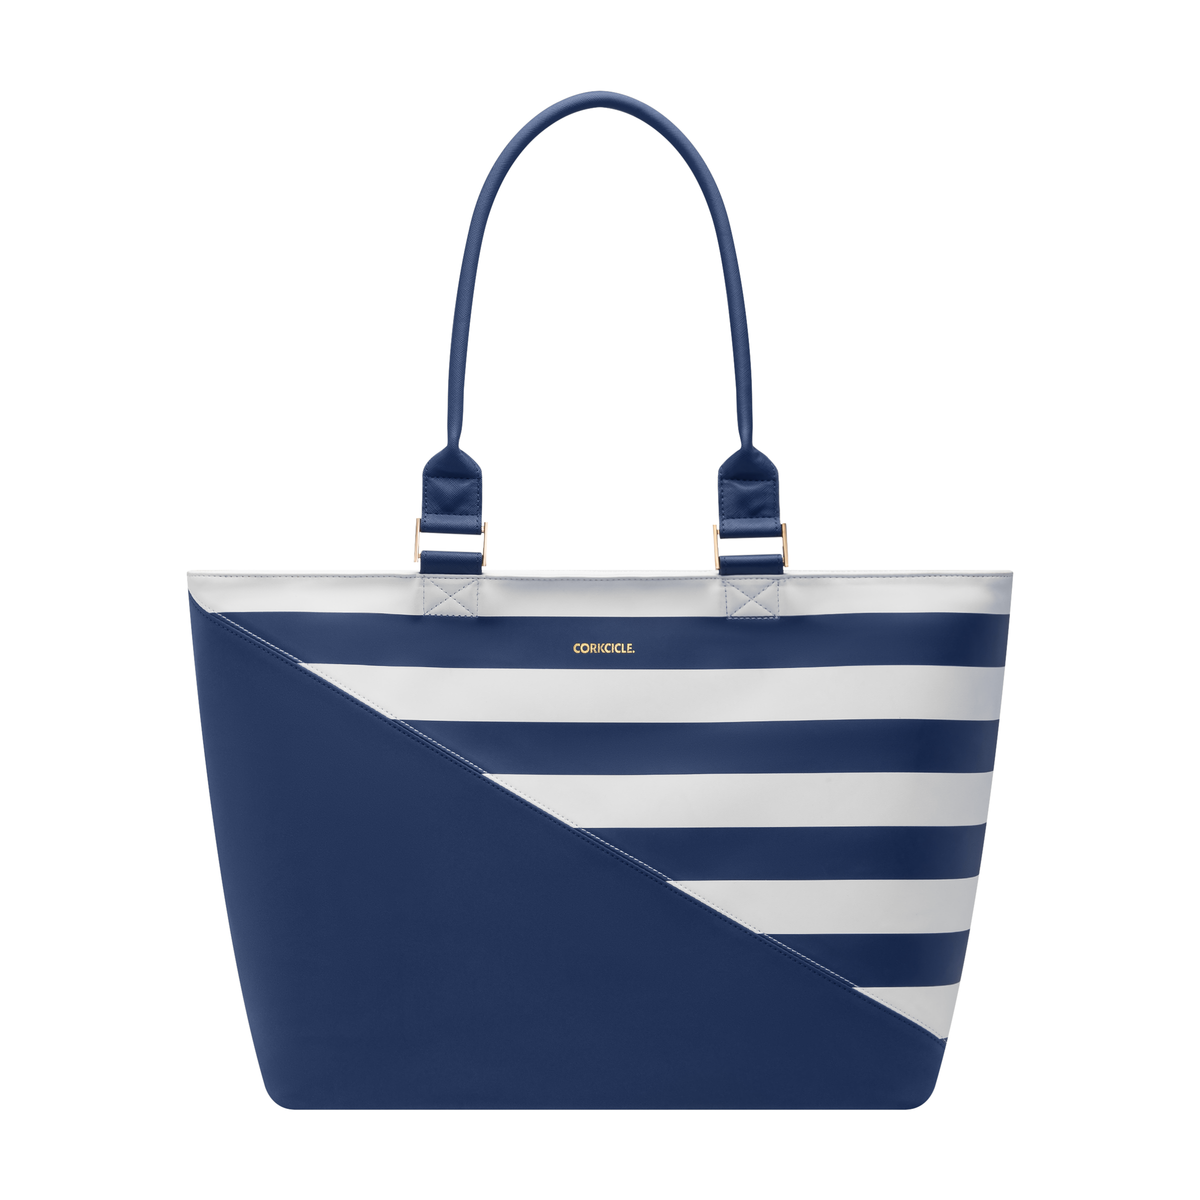 CORKCICLE - Virginia Tote Bag Cooler